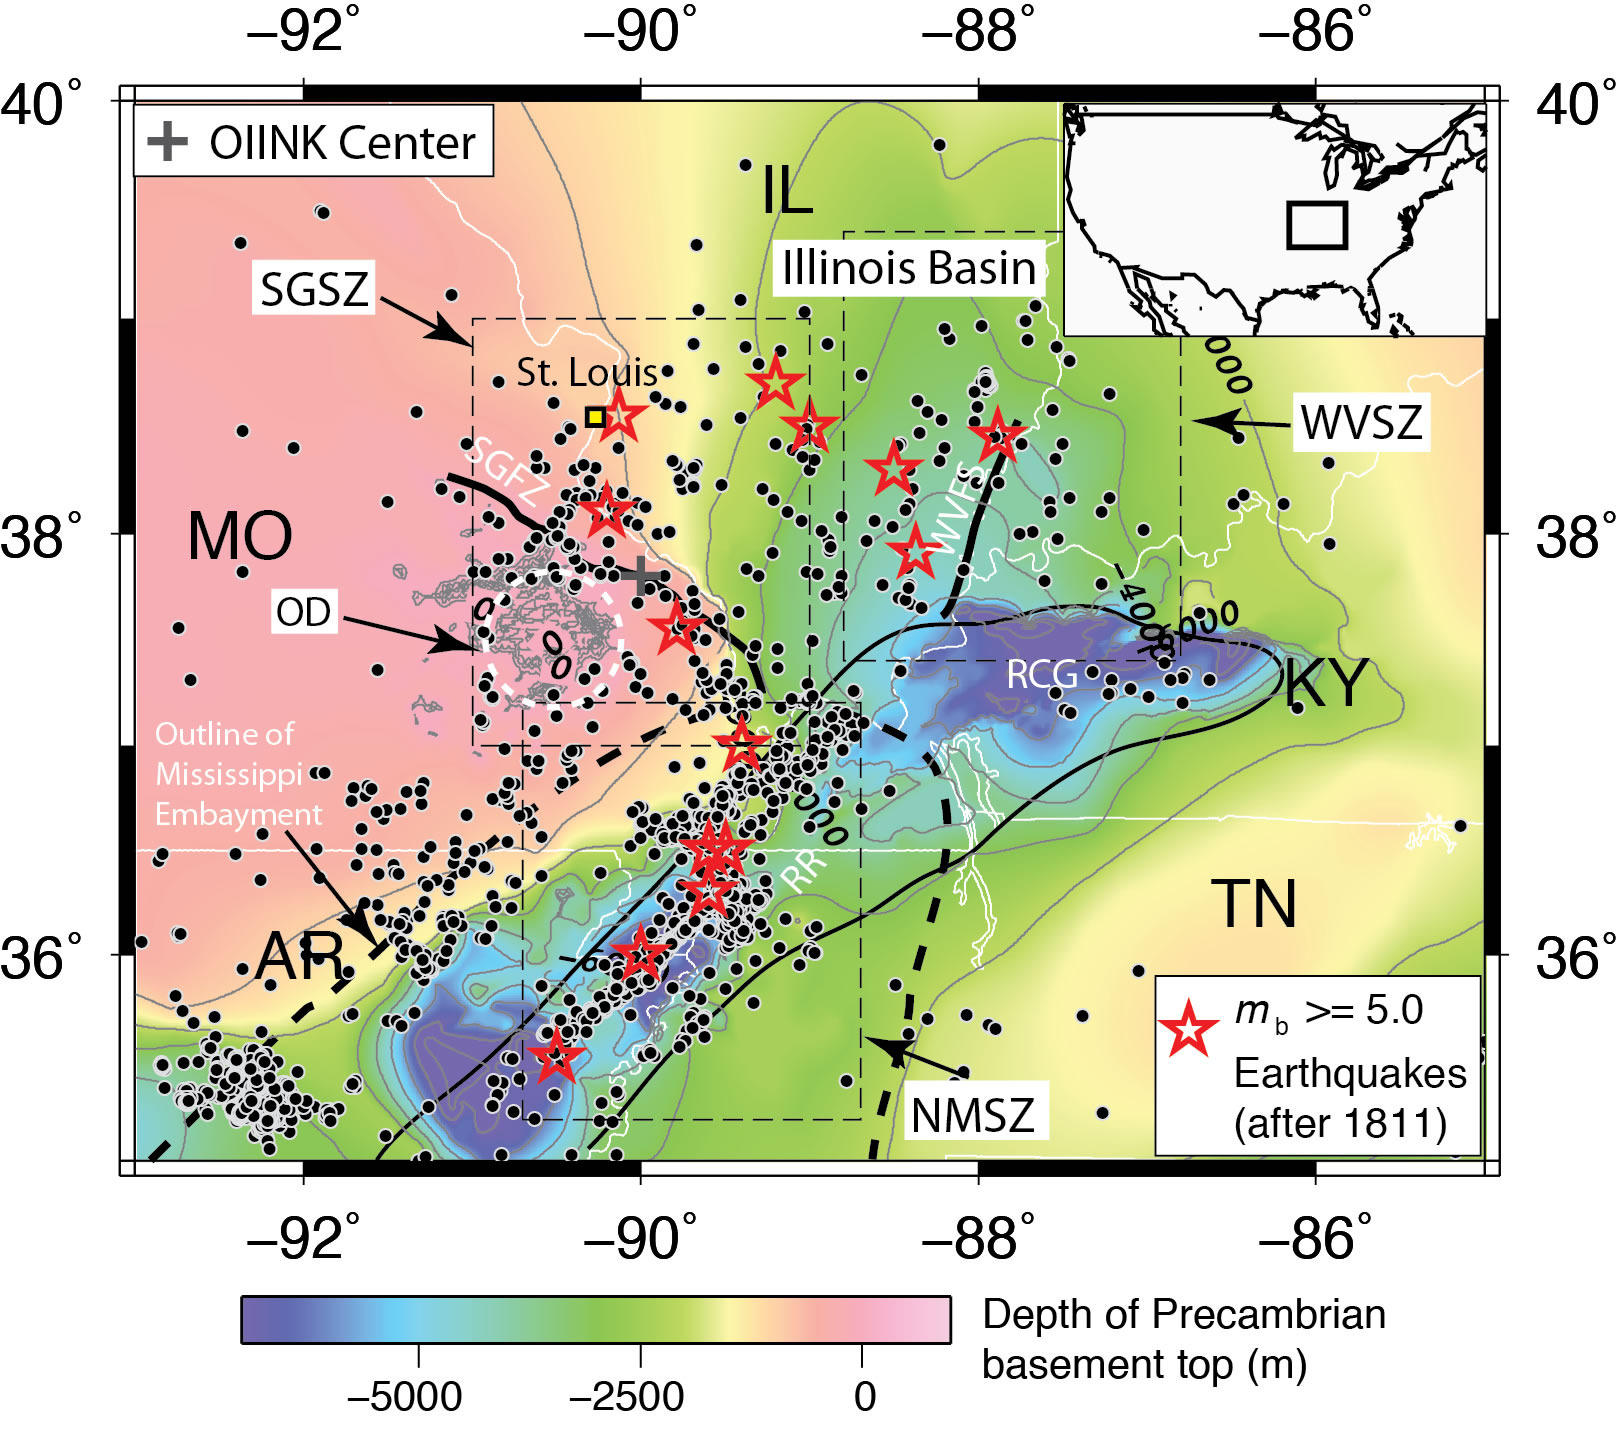 Geologists Record Widespread Activity On Ste. Genevieve ... on 1999 chamoli earthquake, seattle seismic map, yellowstone super volcano kill zone map, seismic map of america, seismic map of texas, seismic structure map, yellowstone seismic map, seismic map of the us, safety zone map, new madrid seismic zone, 2011 sikkim earthquake, ibc zip code map, gsa seismic map, 1934 bihar earthquake, canadian seismic map, seismic category map, anchorage seismic map, 2001 gujarat earthquake, mexico seismic map, seismic class map, canada seismic map, environmental zone map, yellowstone volcano blast zone map, ibc seismic map, seismic camp map,